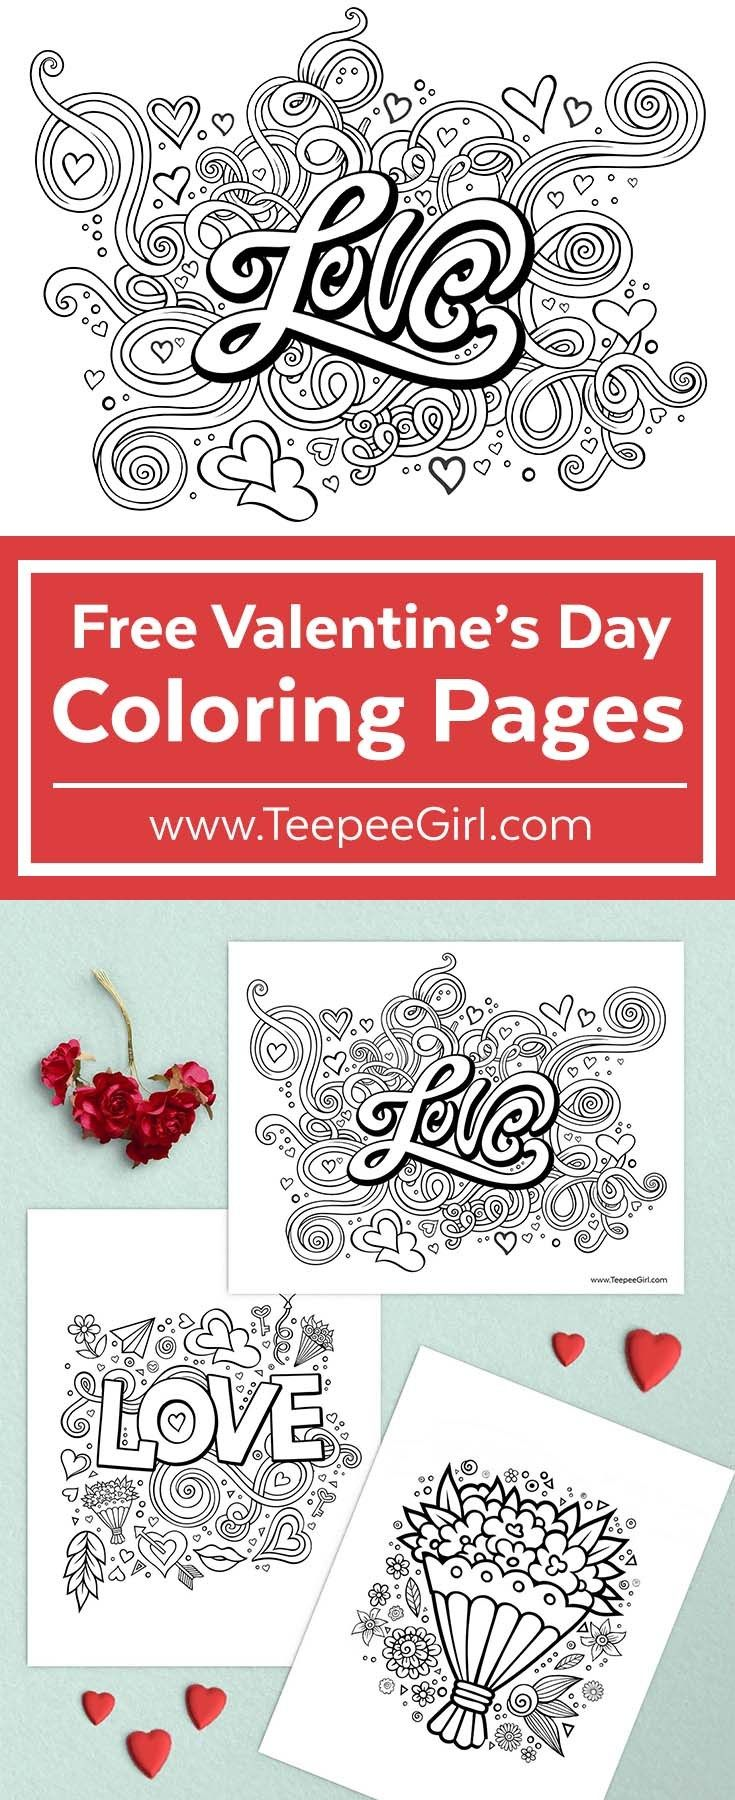 Ba ba back to school coloring sheets printable - These Free Valentines Coloring Pages Are Perfect For Class Church Parties Play Dates